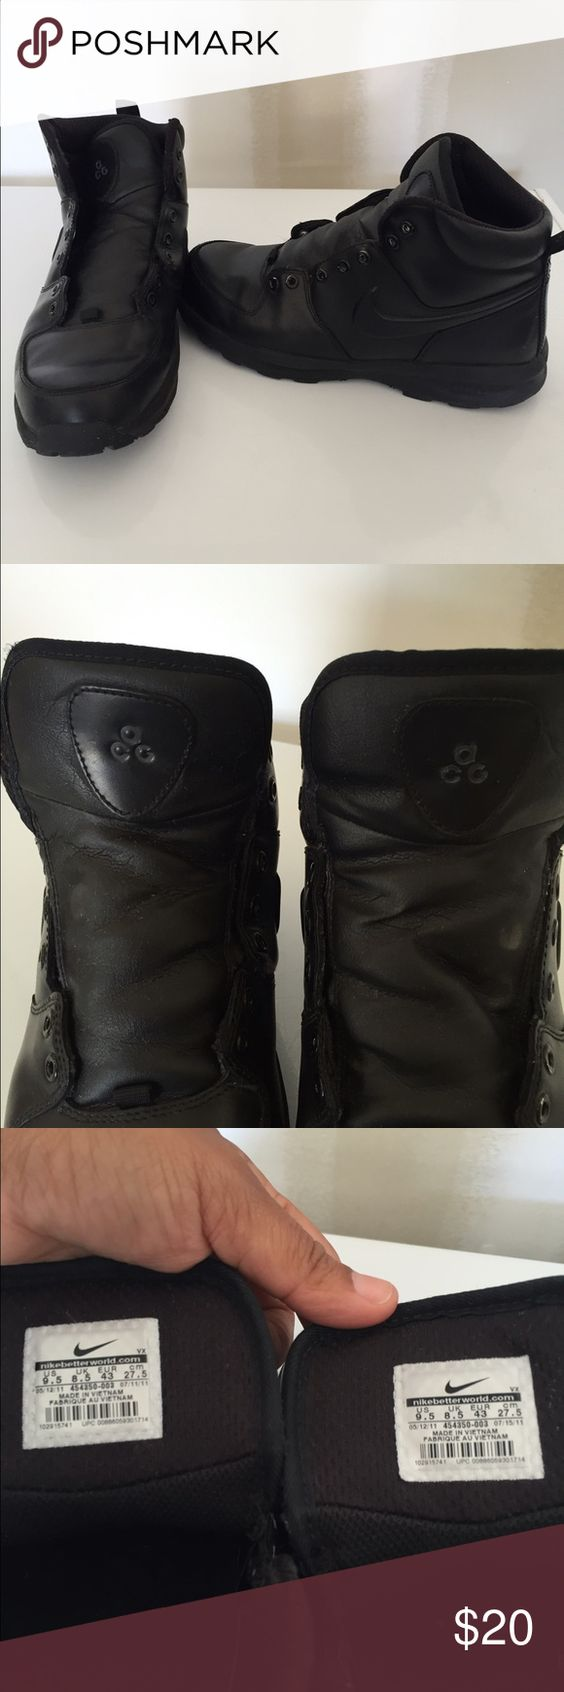 Black ACG work boots Men 9.5 Black ACG work boots for men size 9.5. They are in great shape. Just need new laces. Nike Shoes Boots